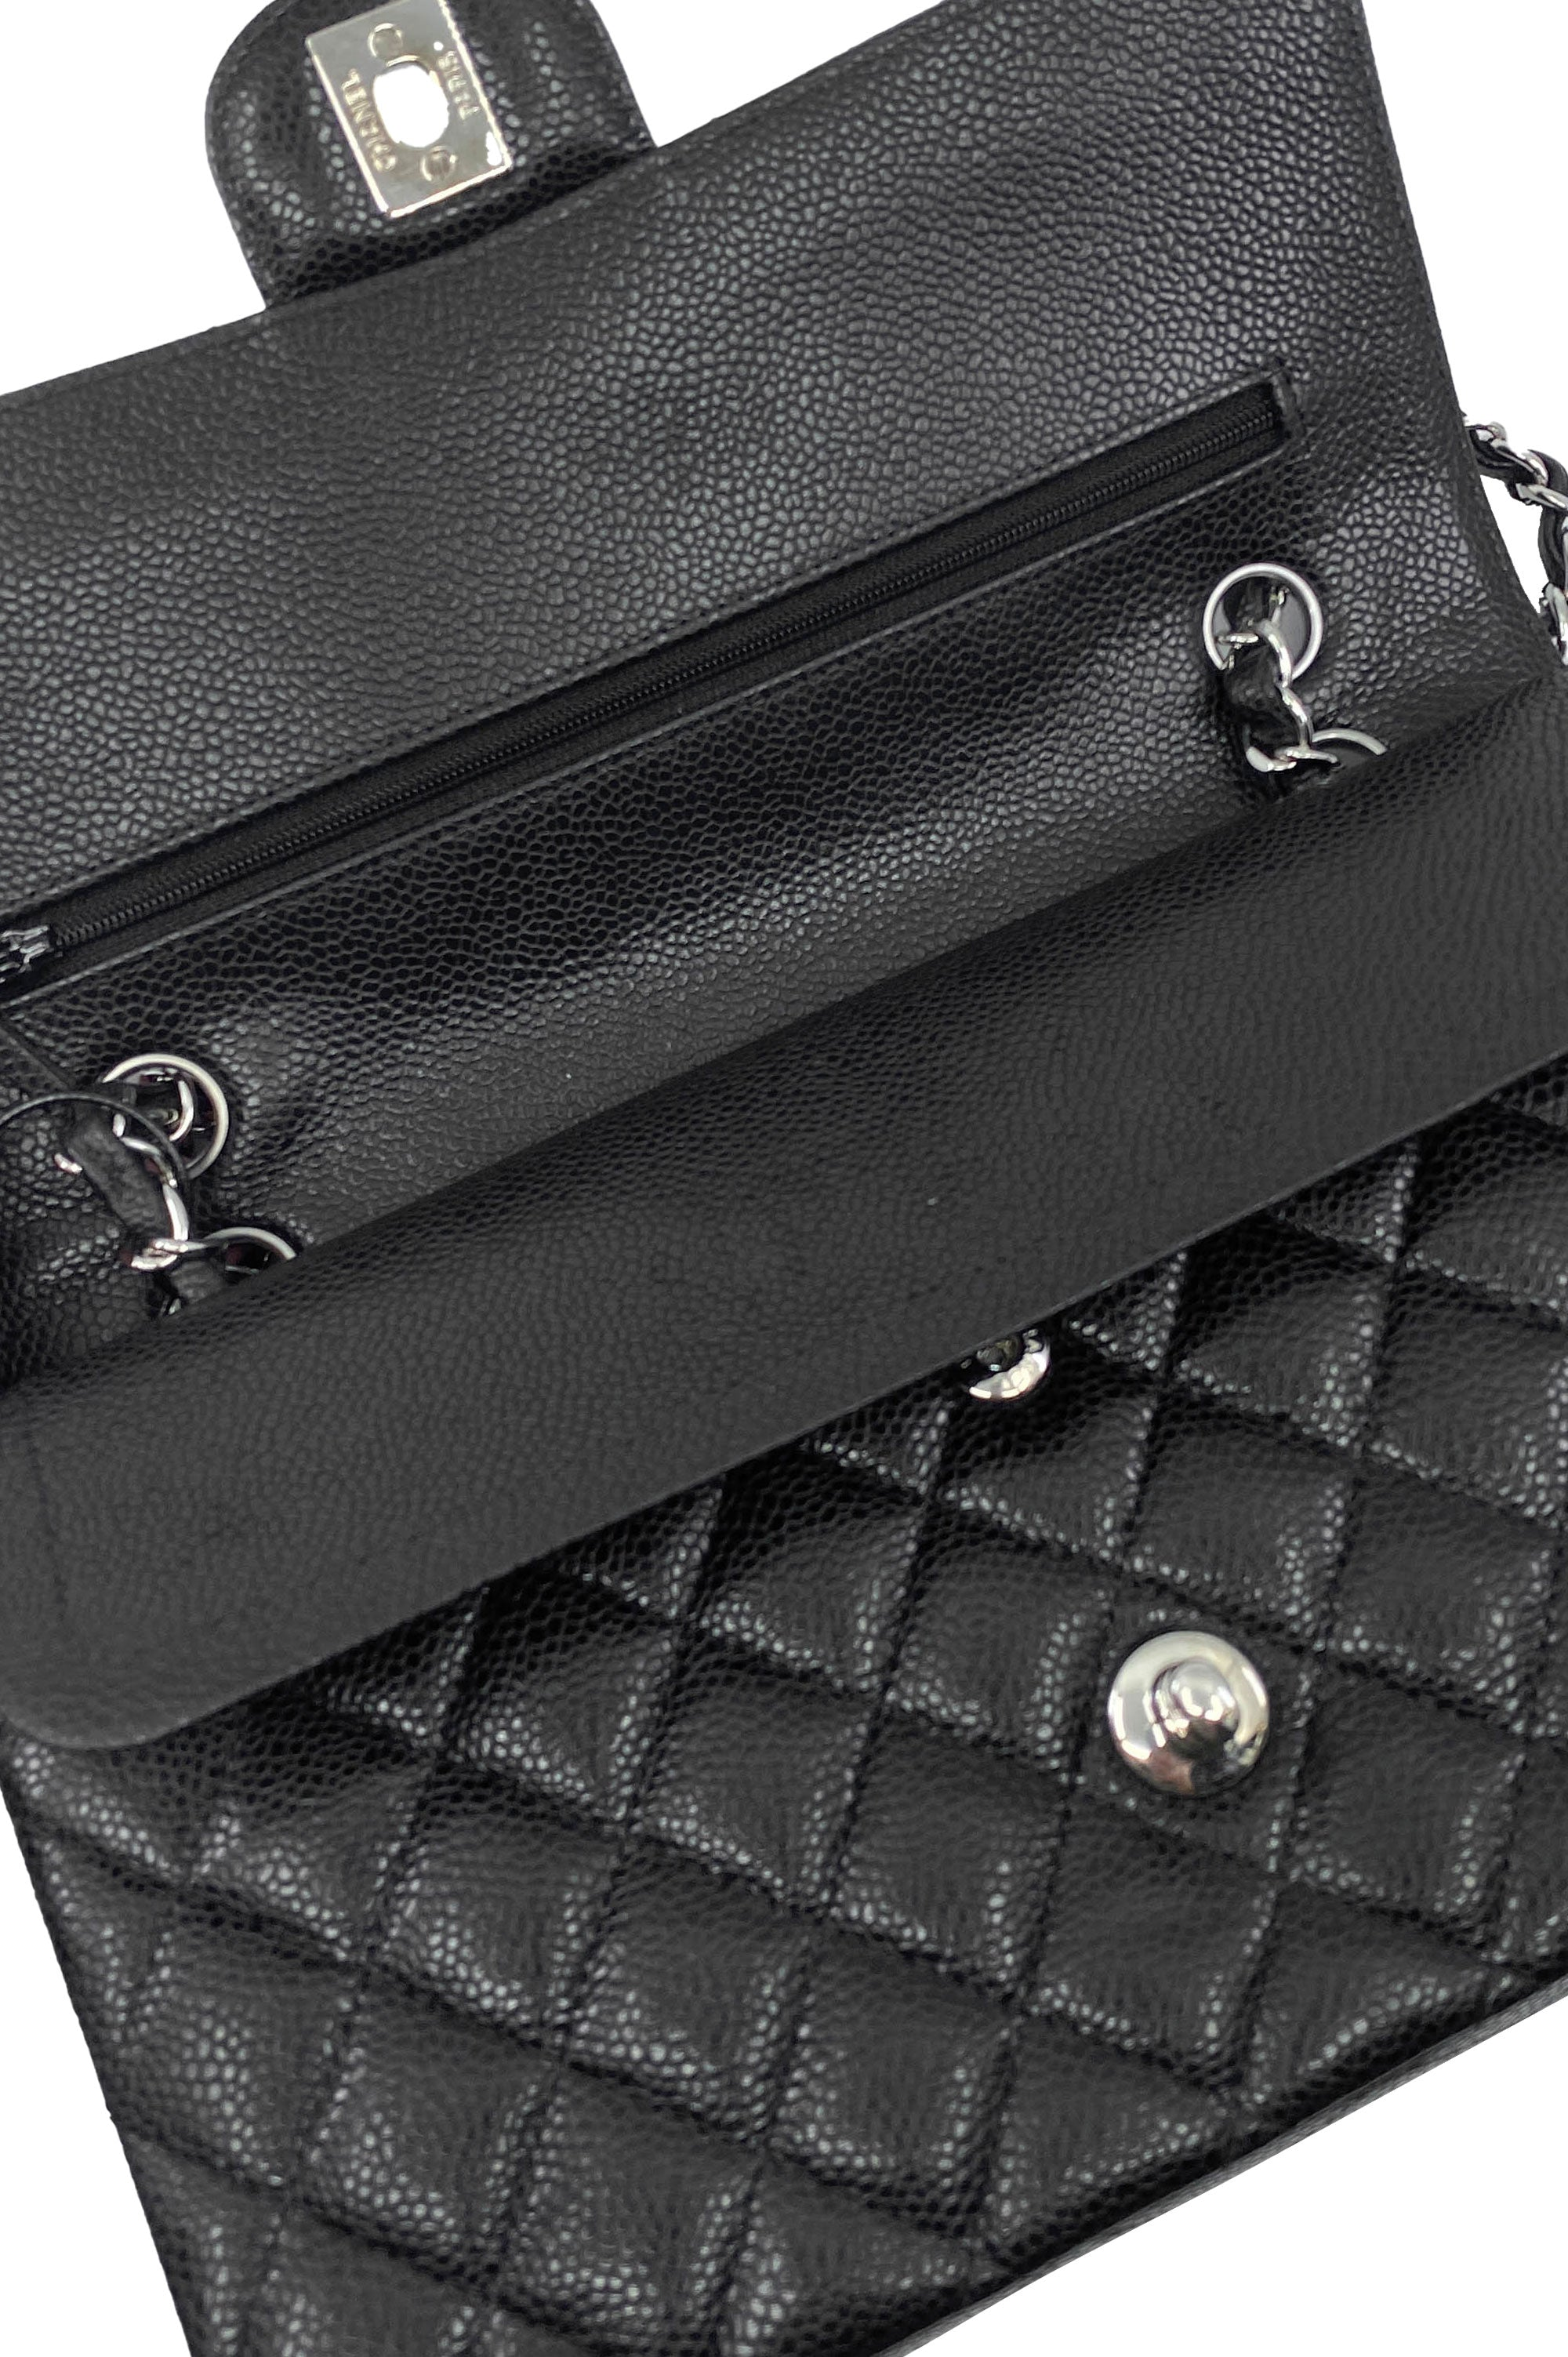 CHANEL Timeless Flapbag Caviar Black